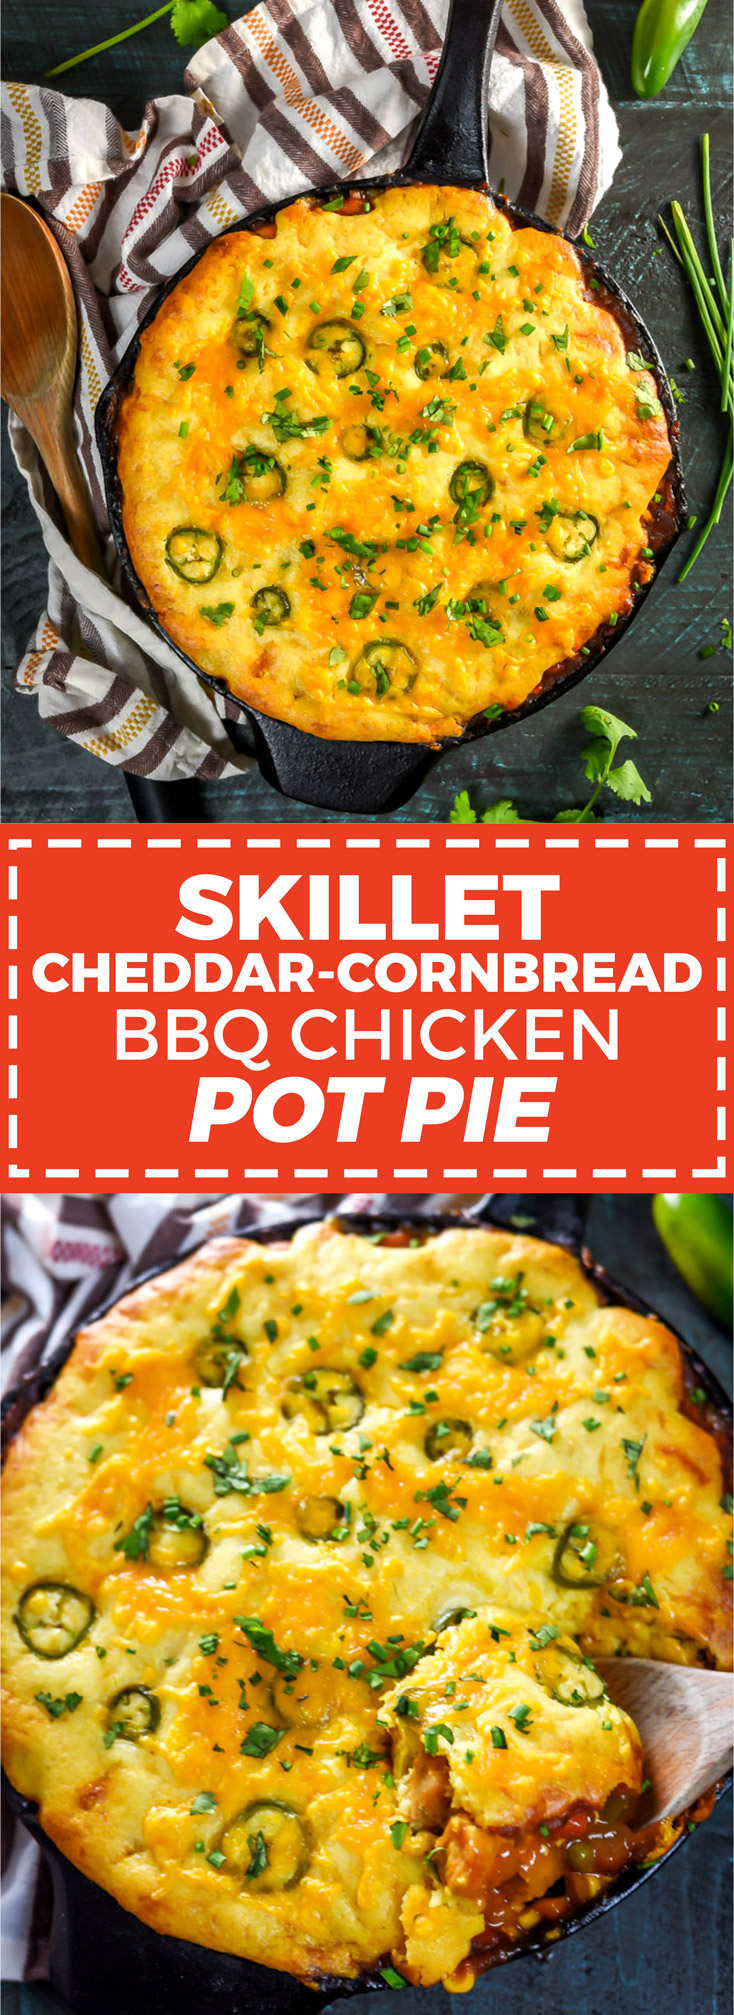 Skillet Cheddar-Cornbread BBQ Chicken Pot Pie. This easy recipe features a cheesy cornbread crust above tender chicken and vegetables in a barbecue sauce-based gravy. How's that for dinner? | hostthetoast.com